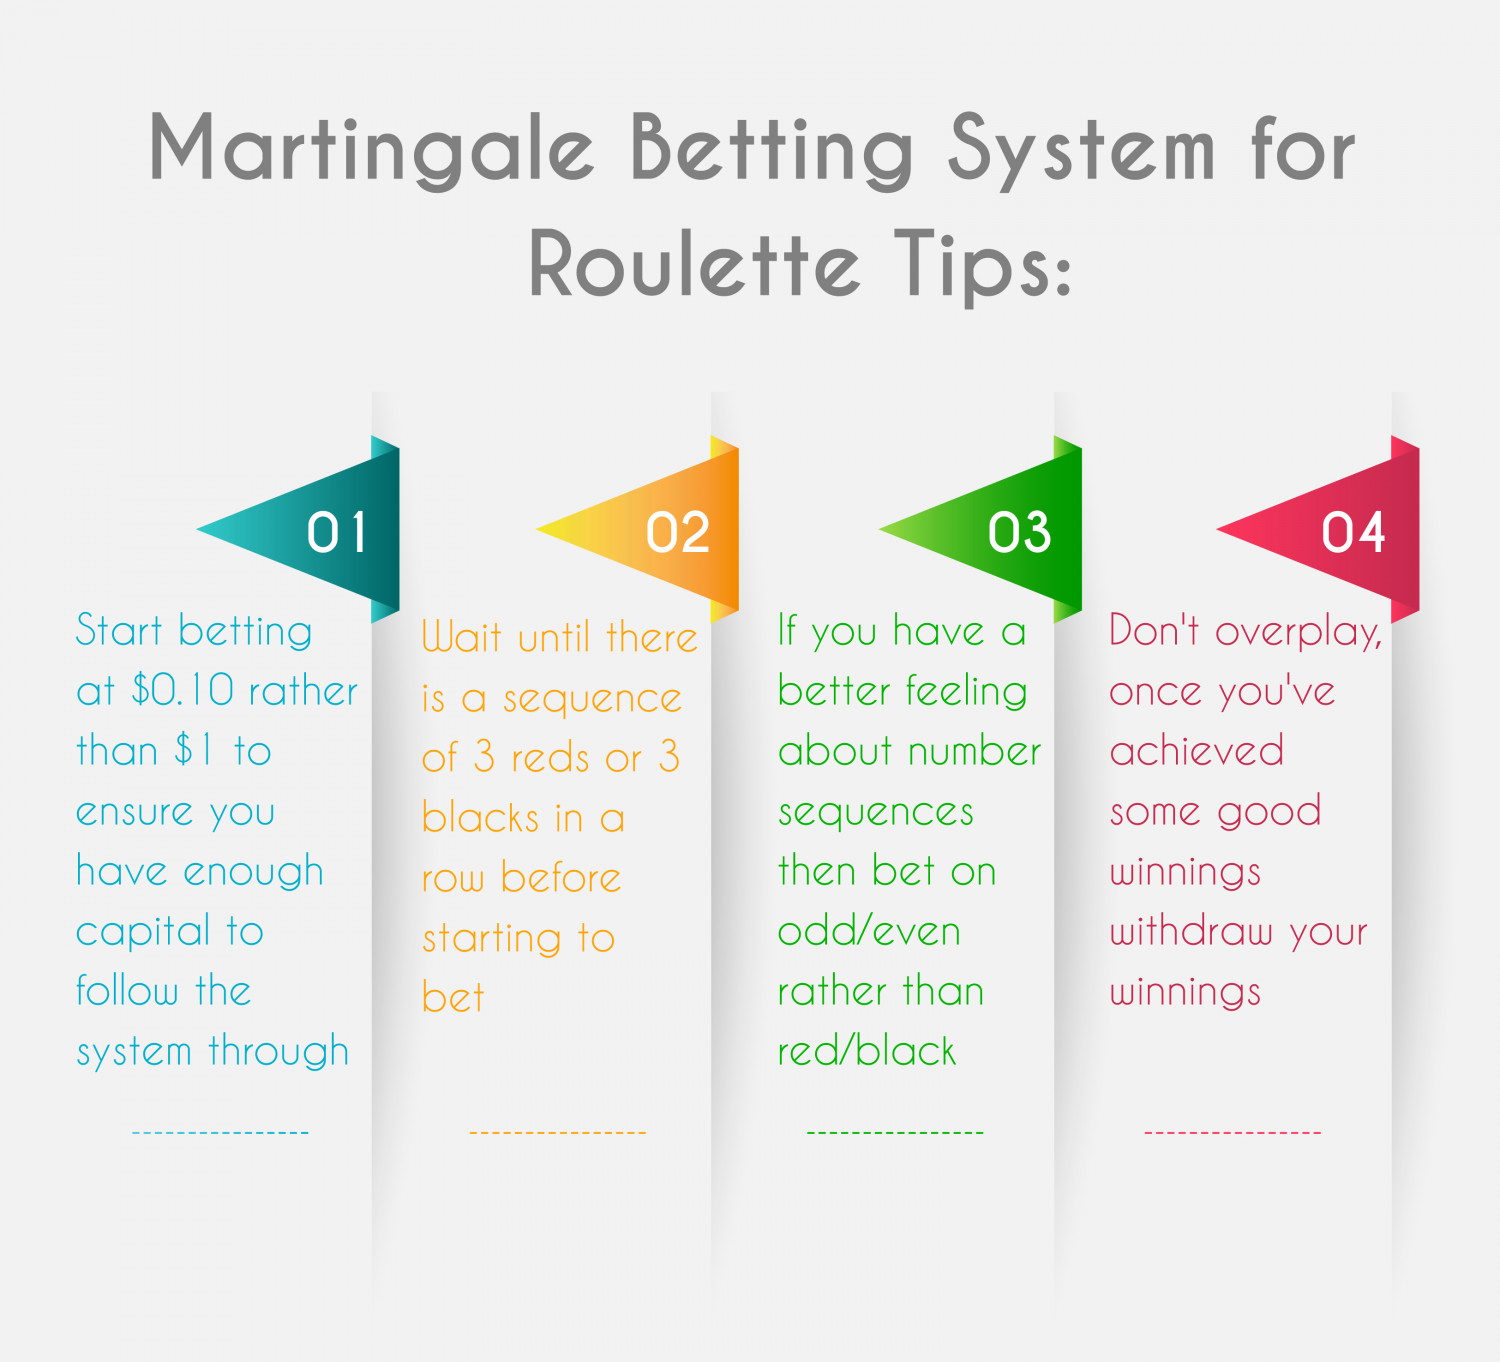 Martingale Betting System for Roulette Infographic